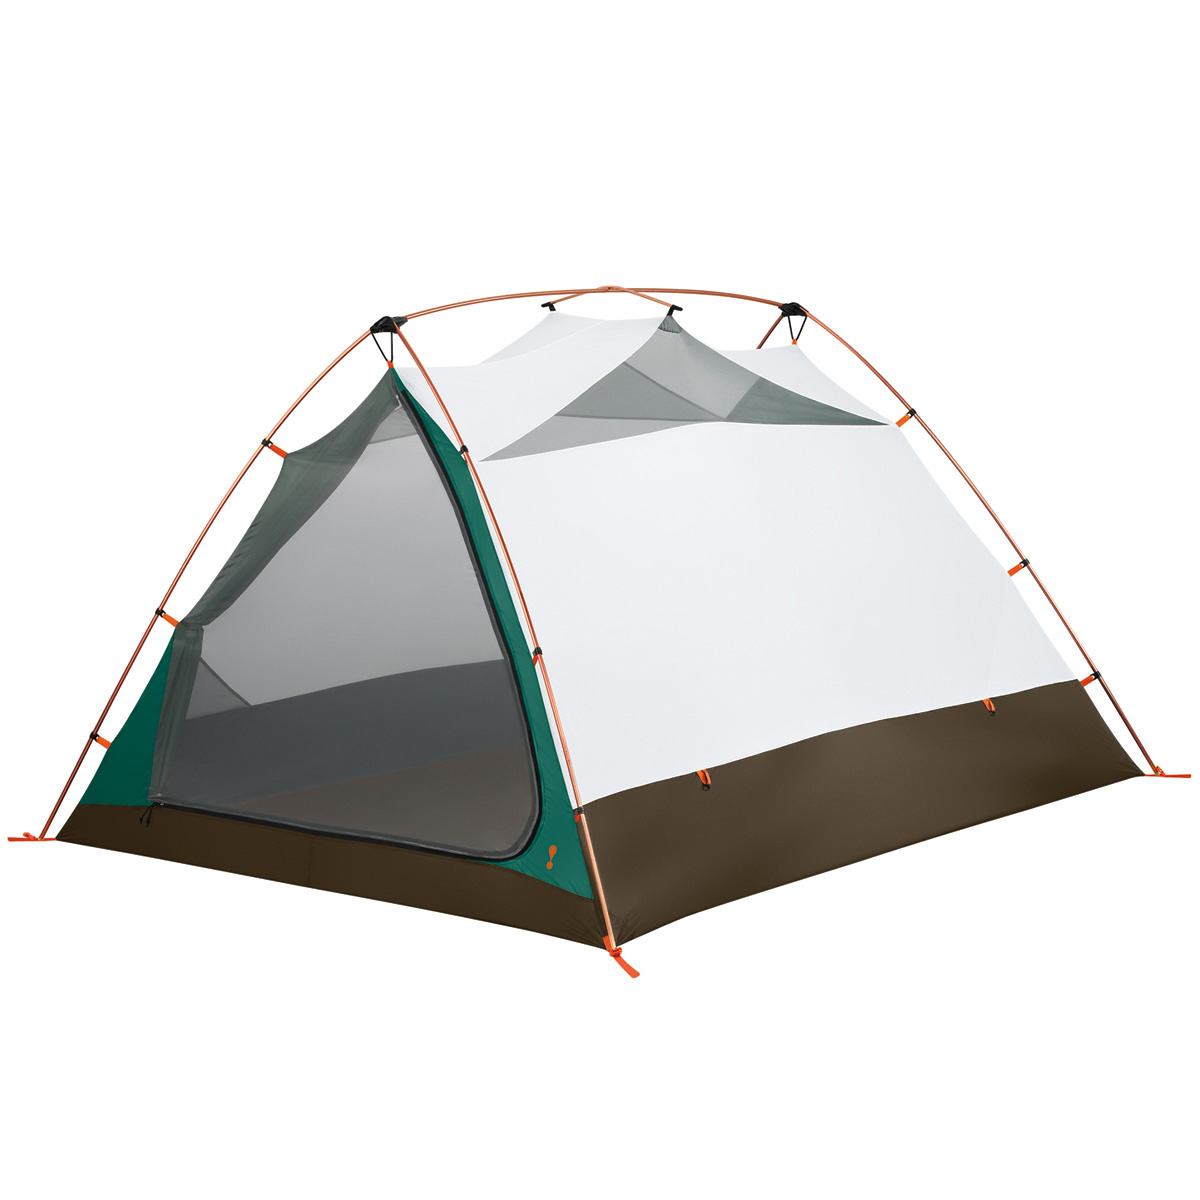 TIMBERLINE® SQ OUTFITTER 4 PERSON TENT